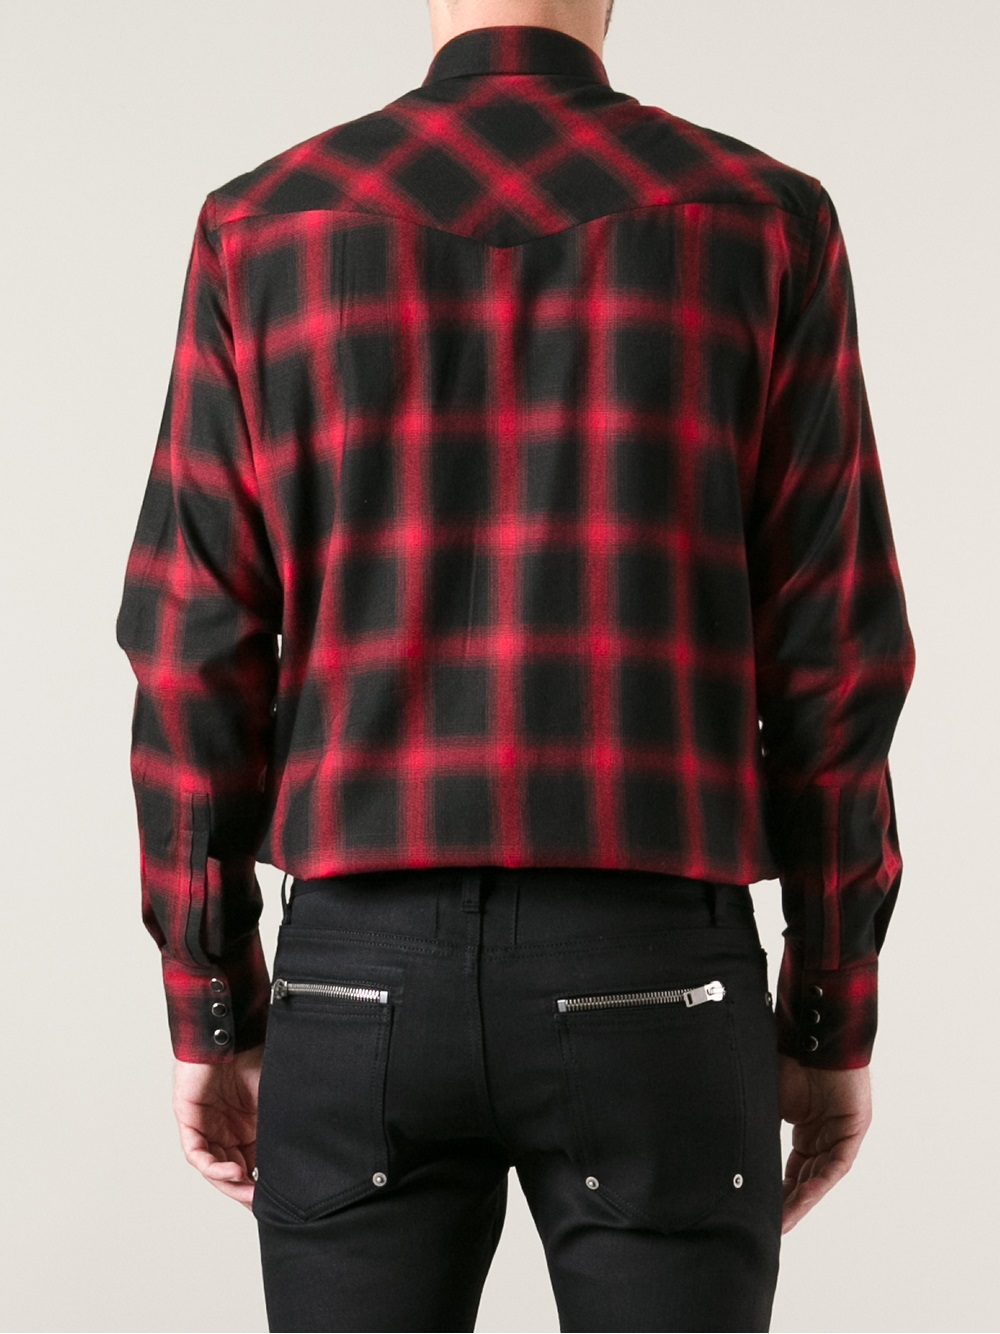 Lyst Saint Laurent Plaid Flannel Shirt In Red For Men